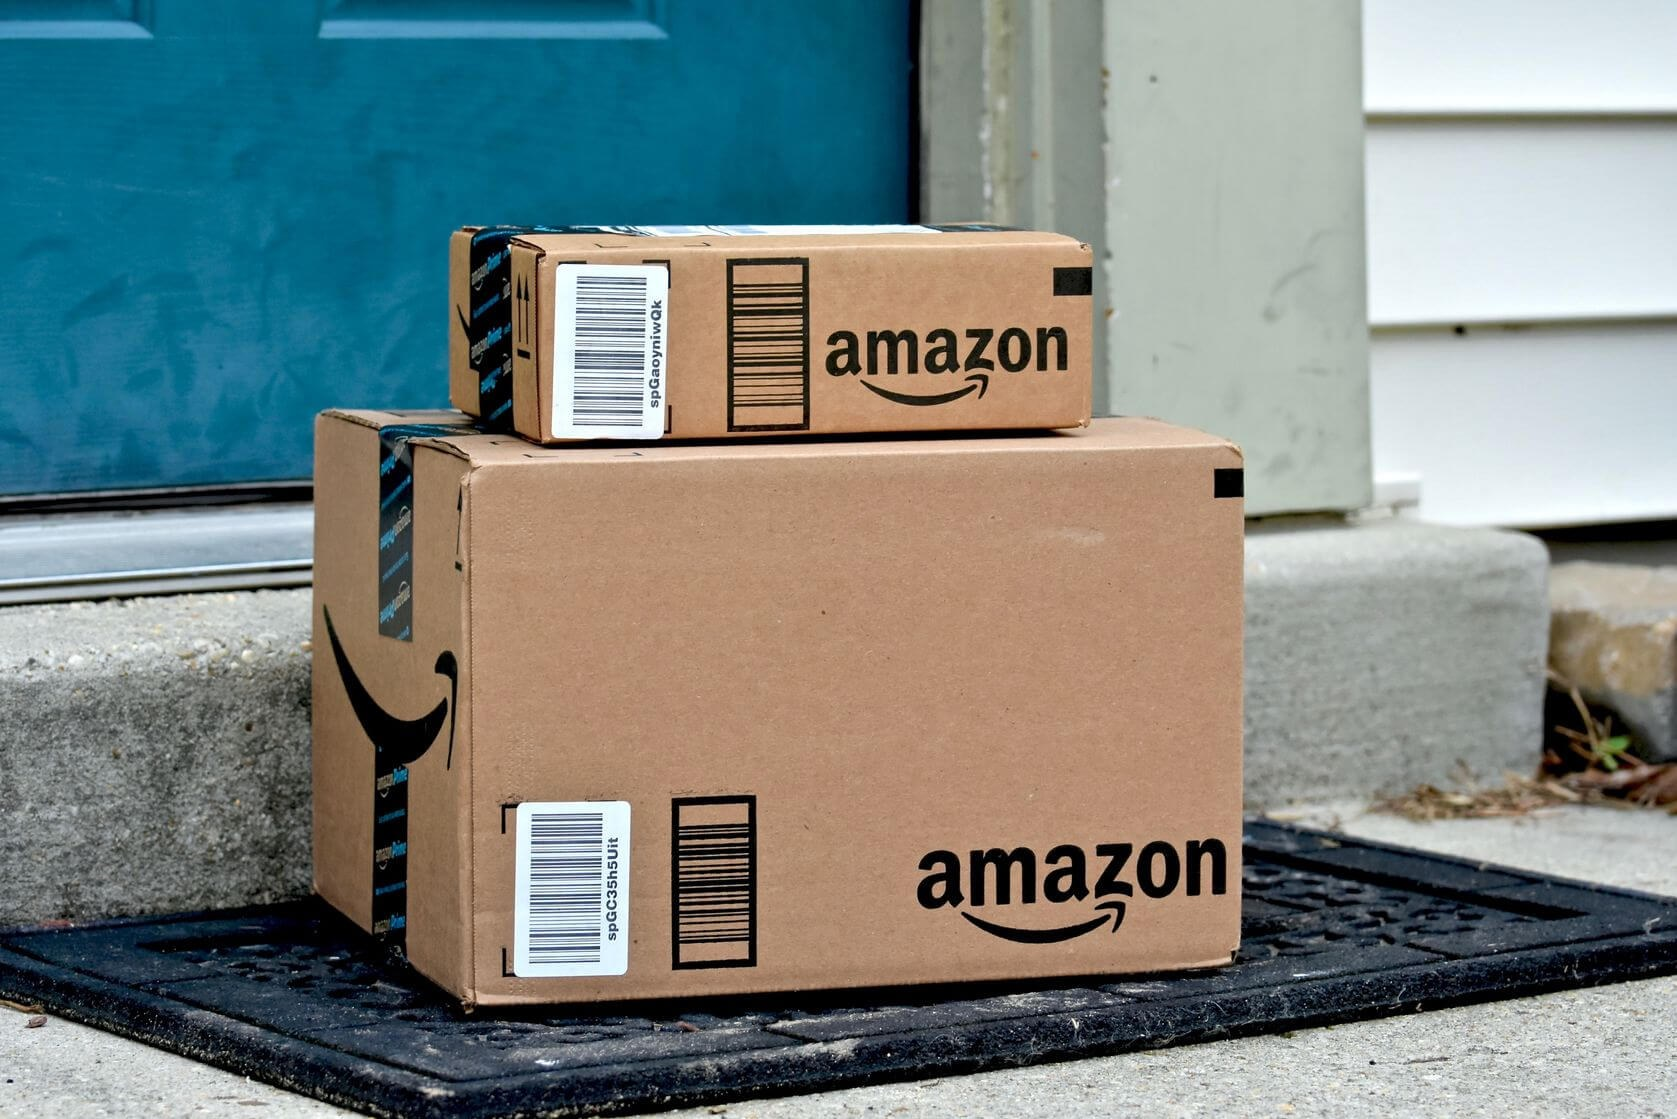 Amazon's upcoming 'Amazon Day' delivery option lets Prime members schedule their shipments